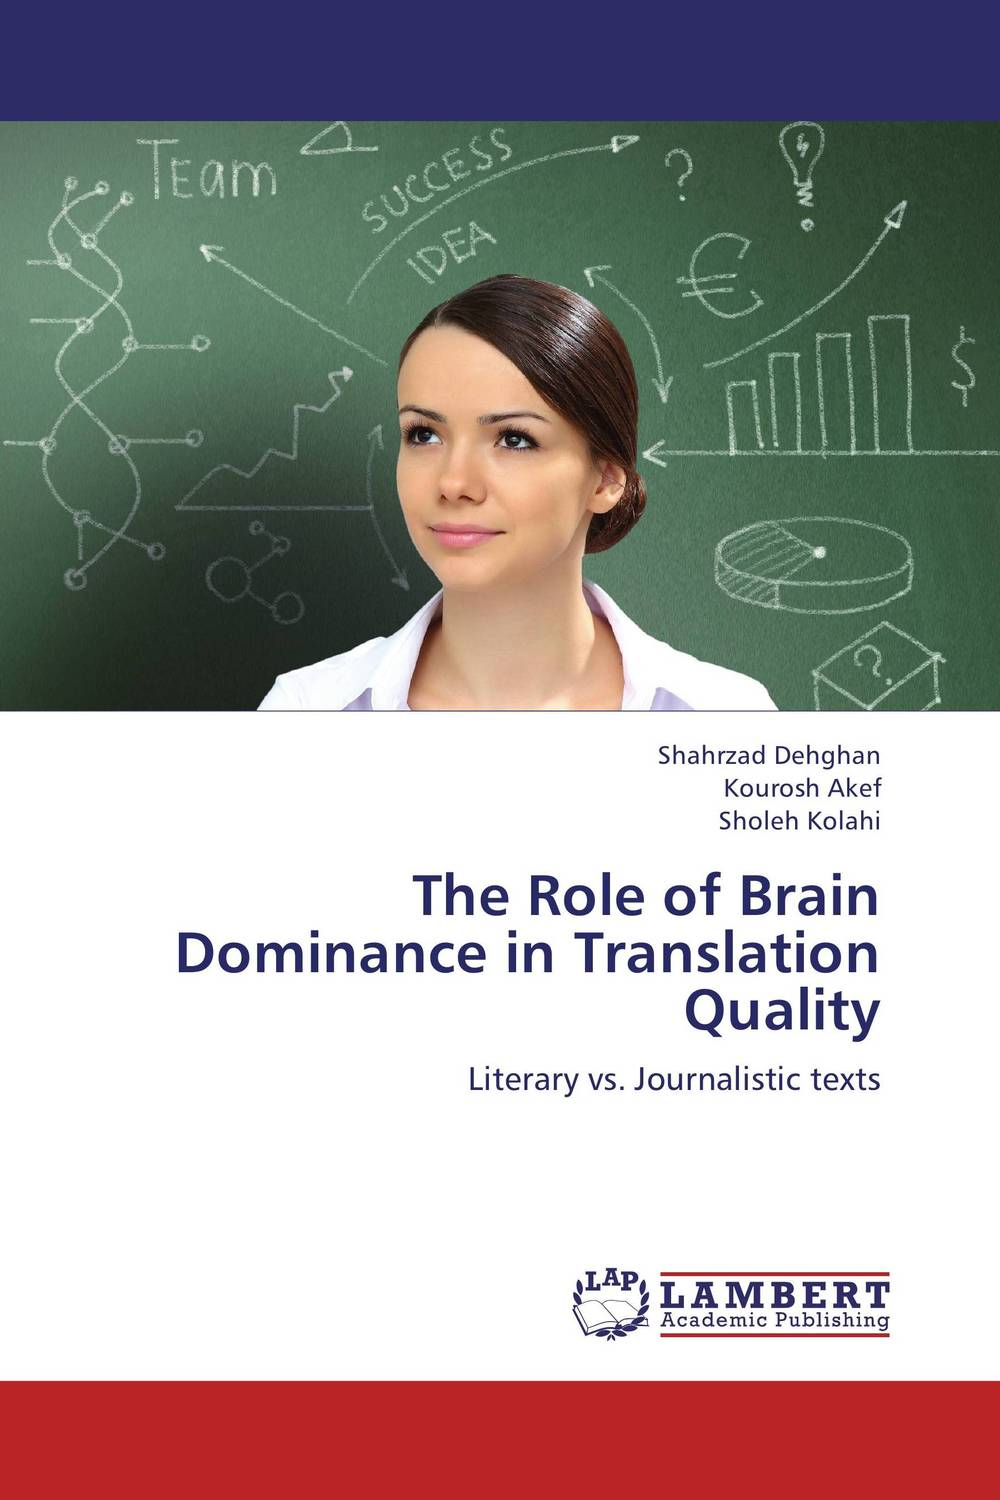 The Role of Brain Dominance in  Translation Quality shahrzad dehghan kourosh akef and sholeh kolahi the role of brain dominance in translation quality